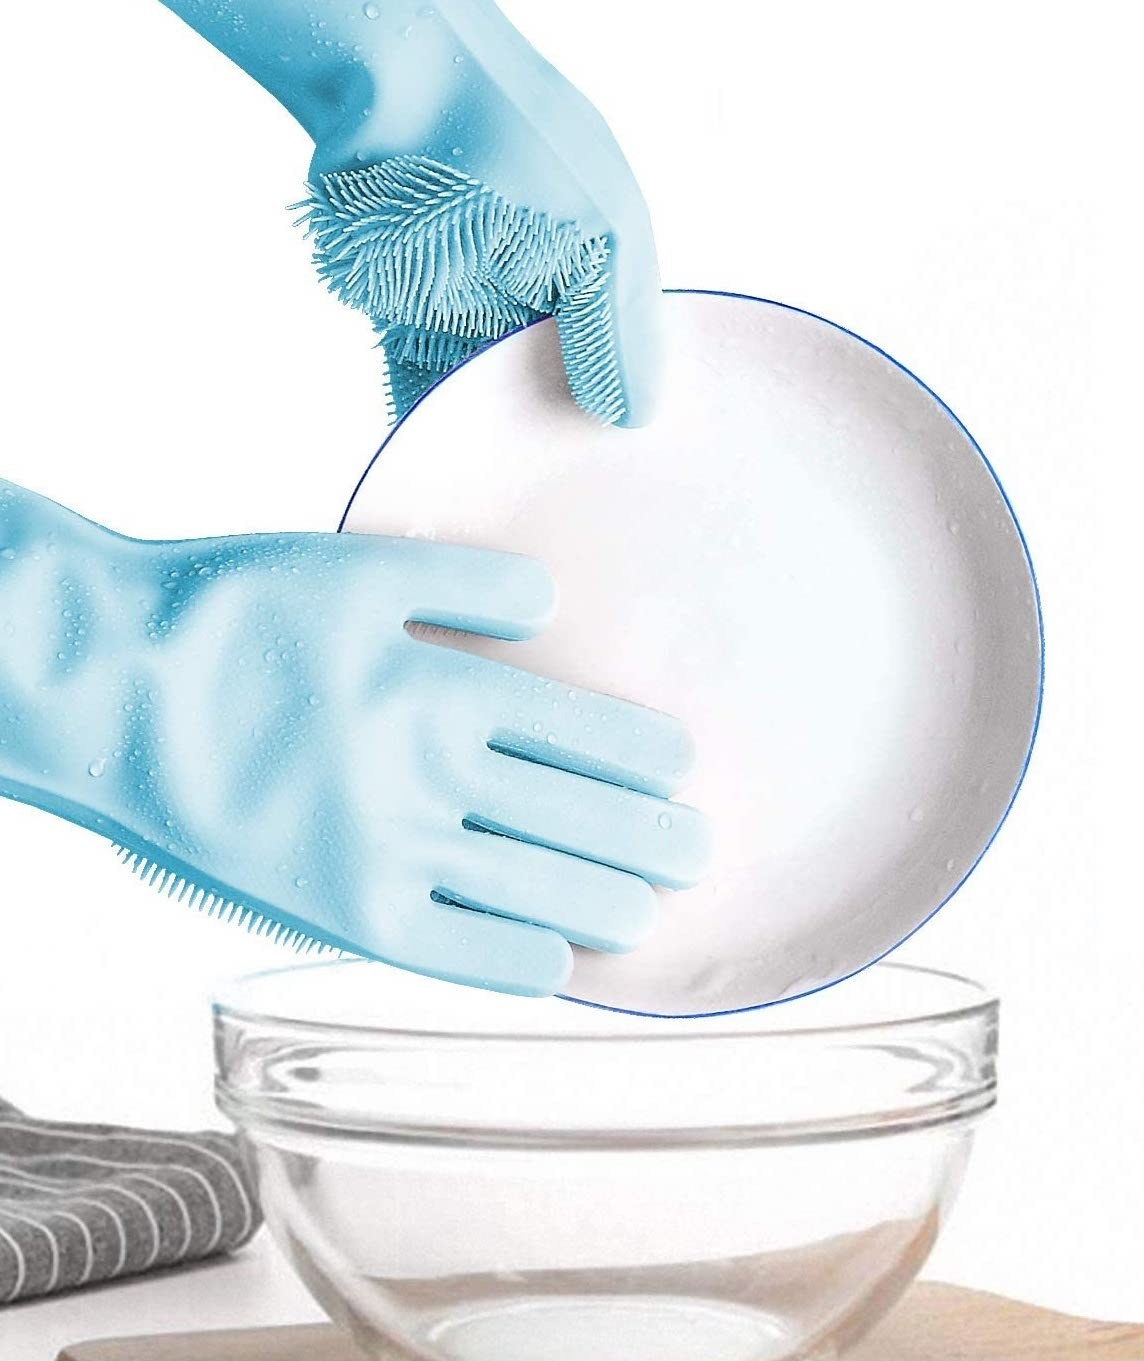 A person washing a plate while wearing silicone dish gloves